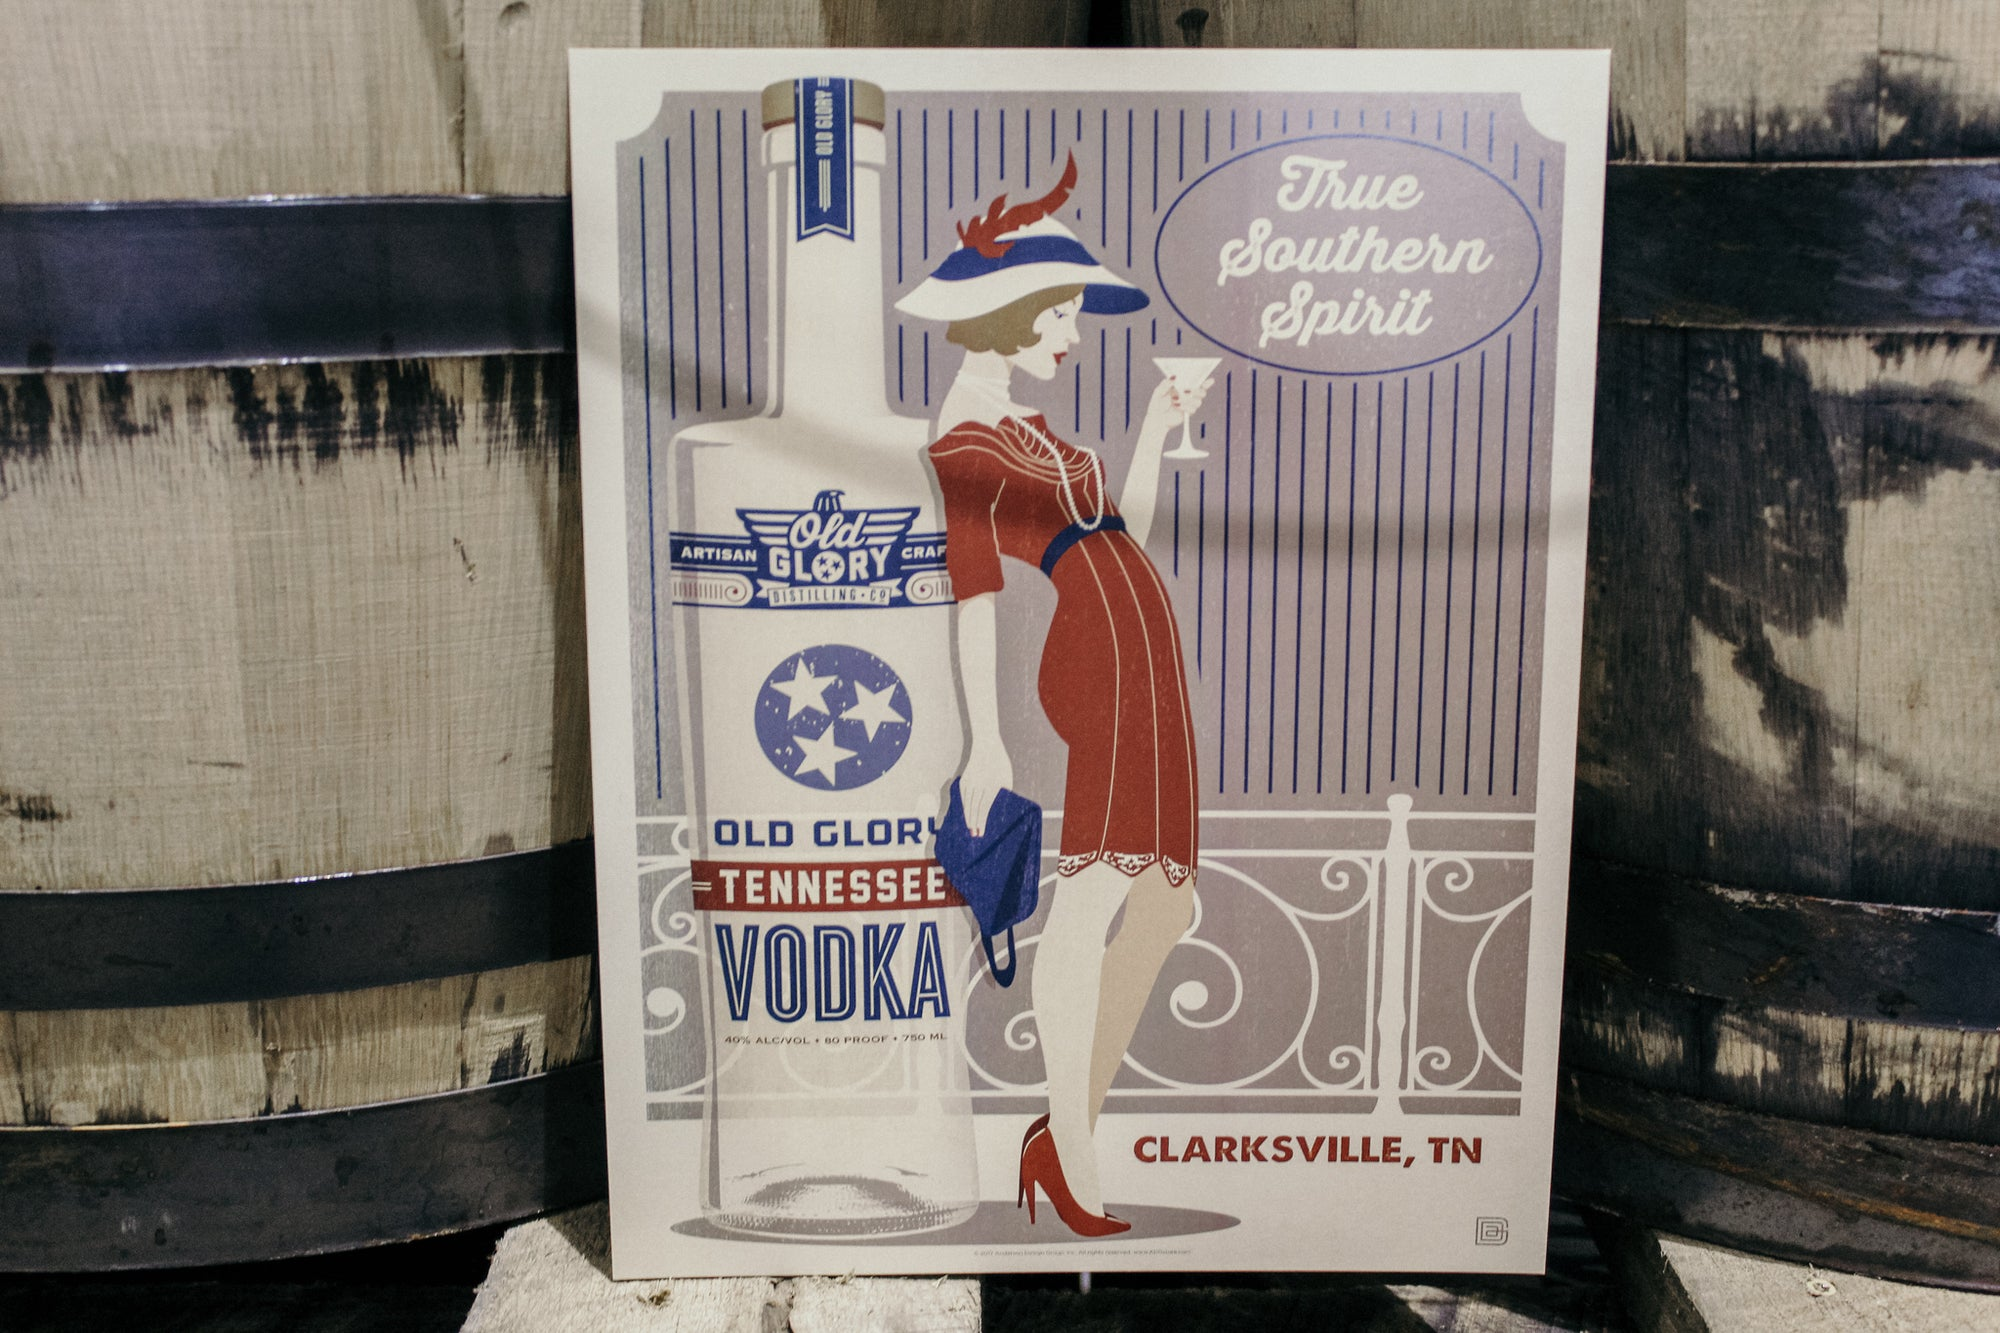 Vodka Girl Poster